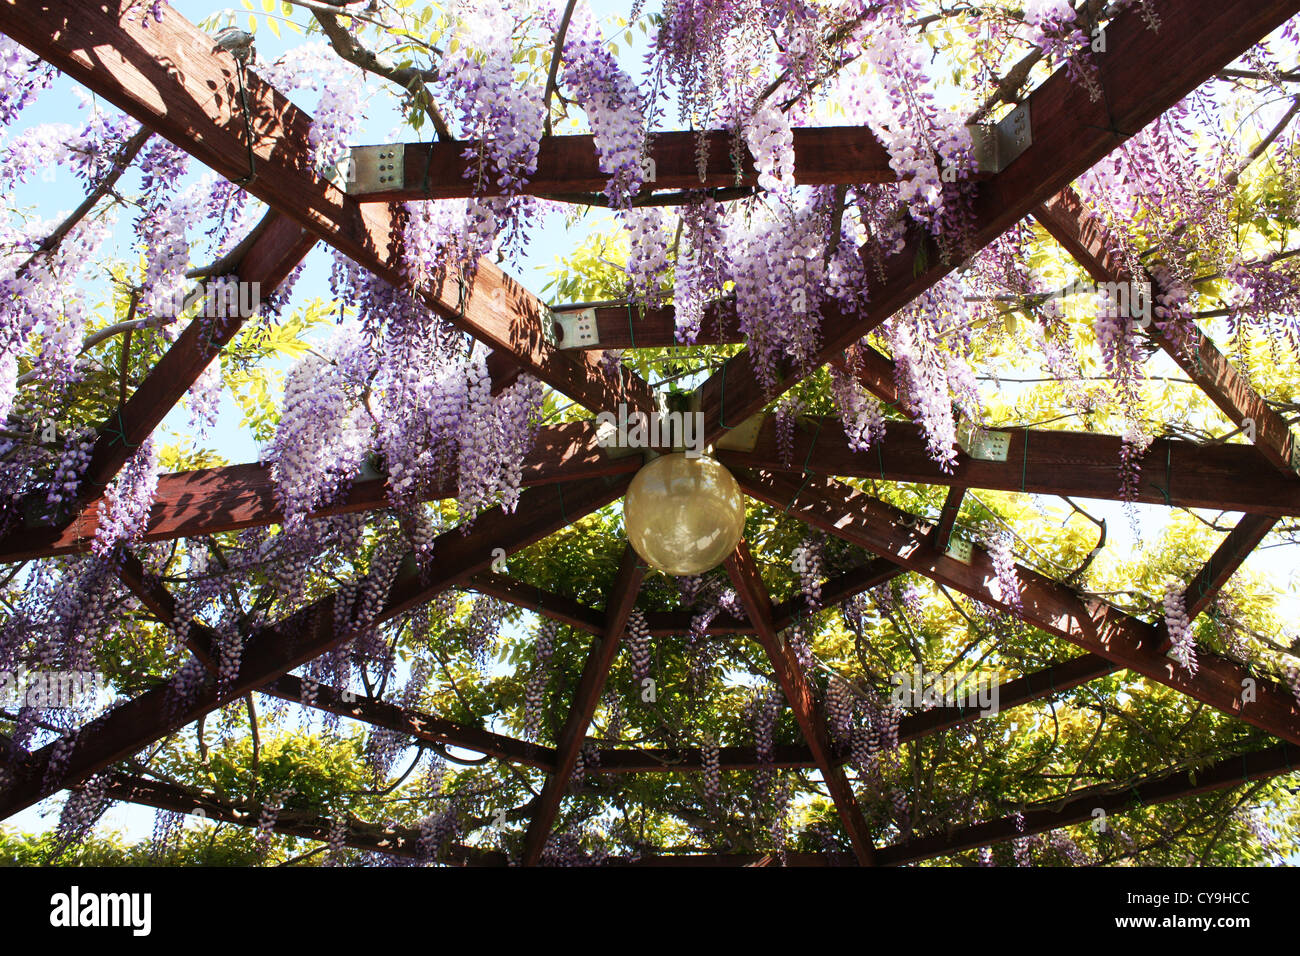 Violet wisteria flowers hanging on wooden structure in garden Stock Photo